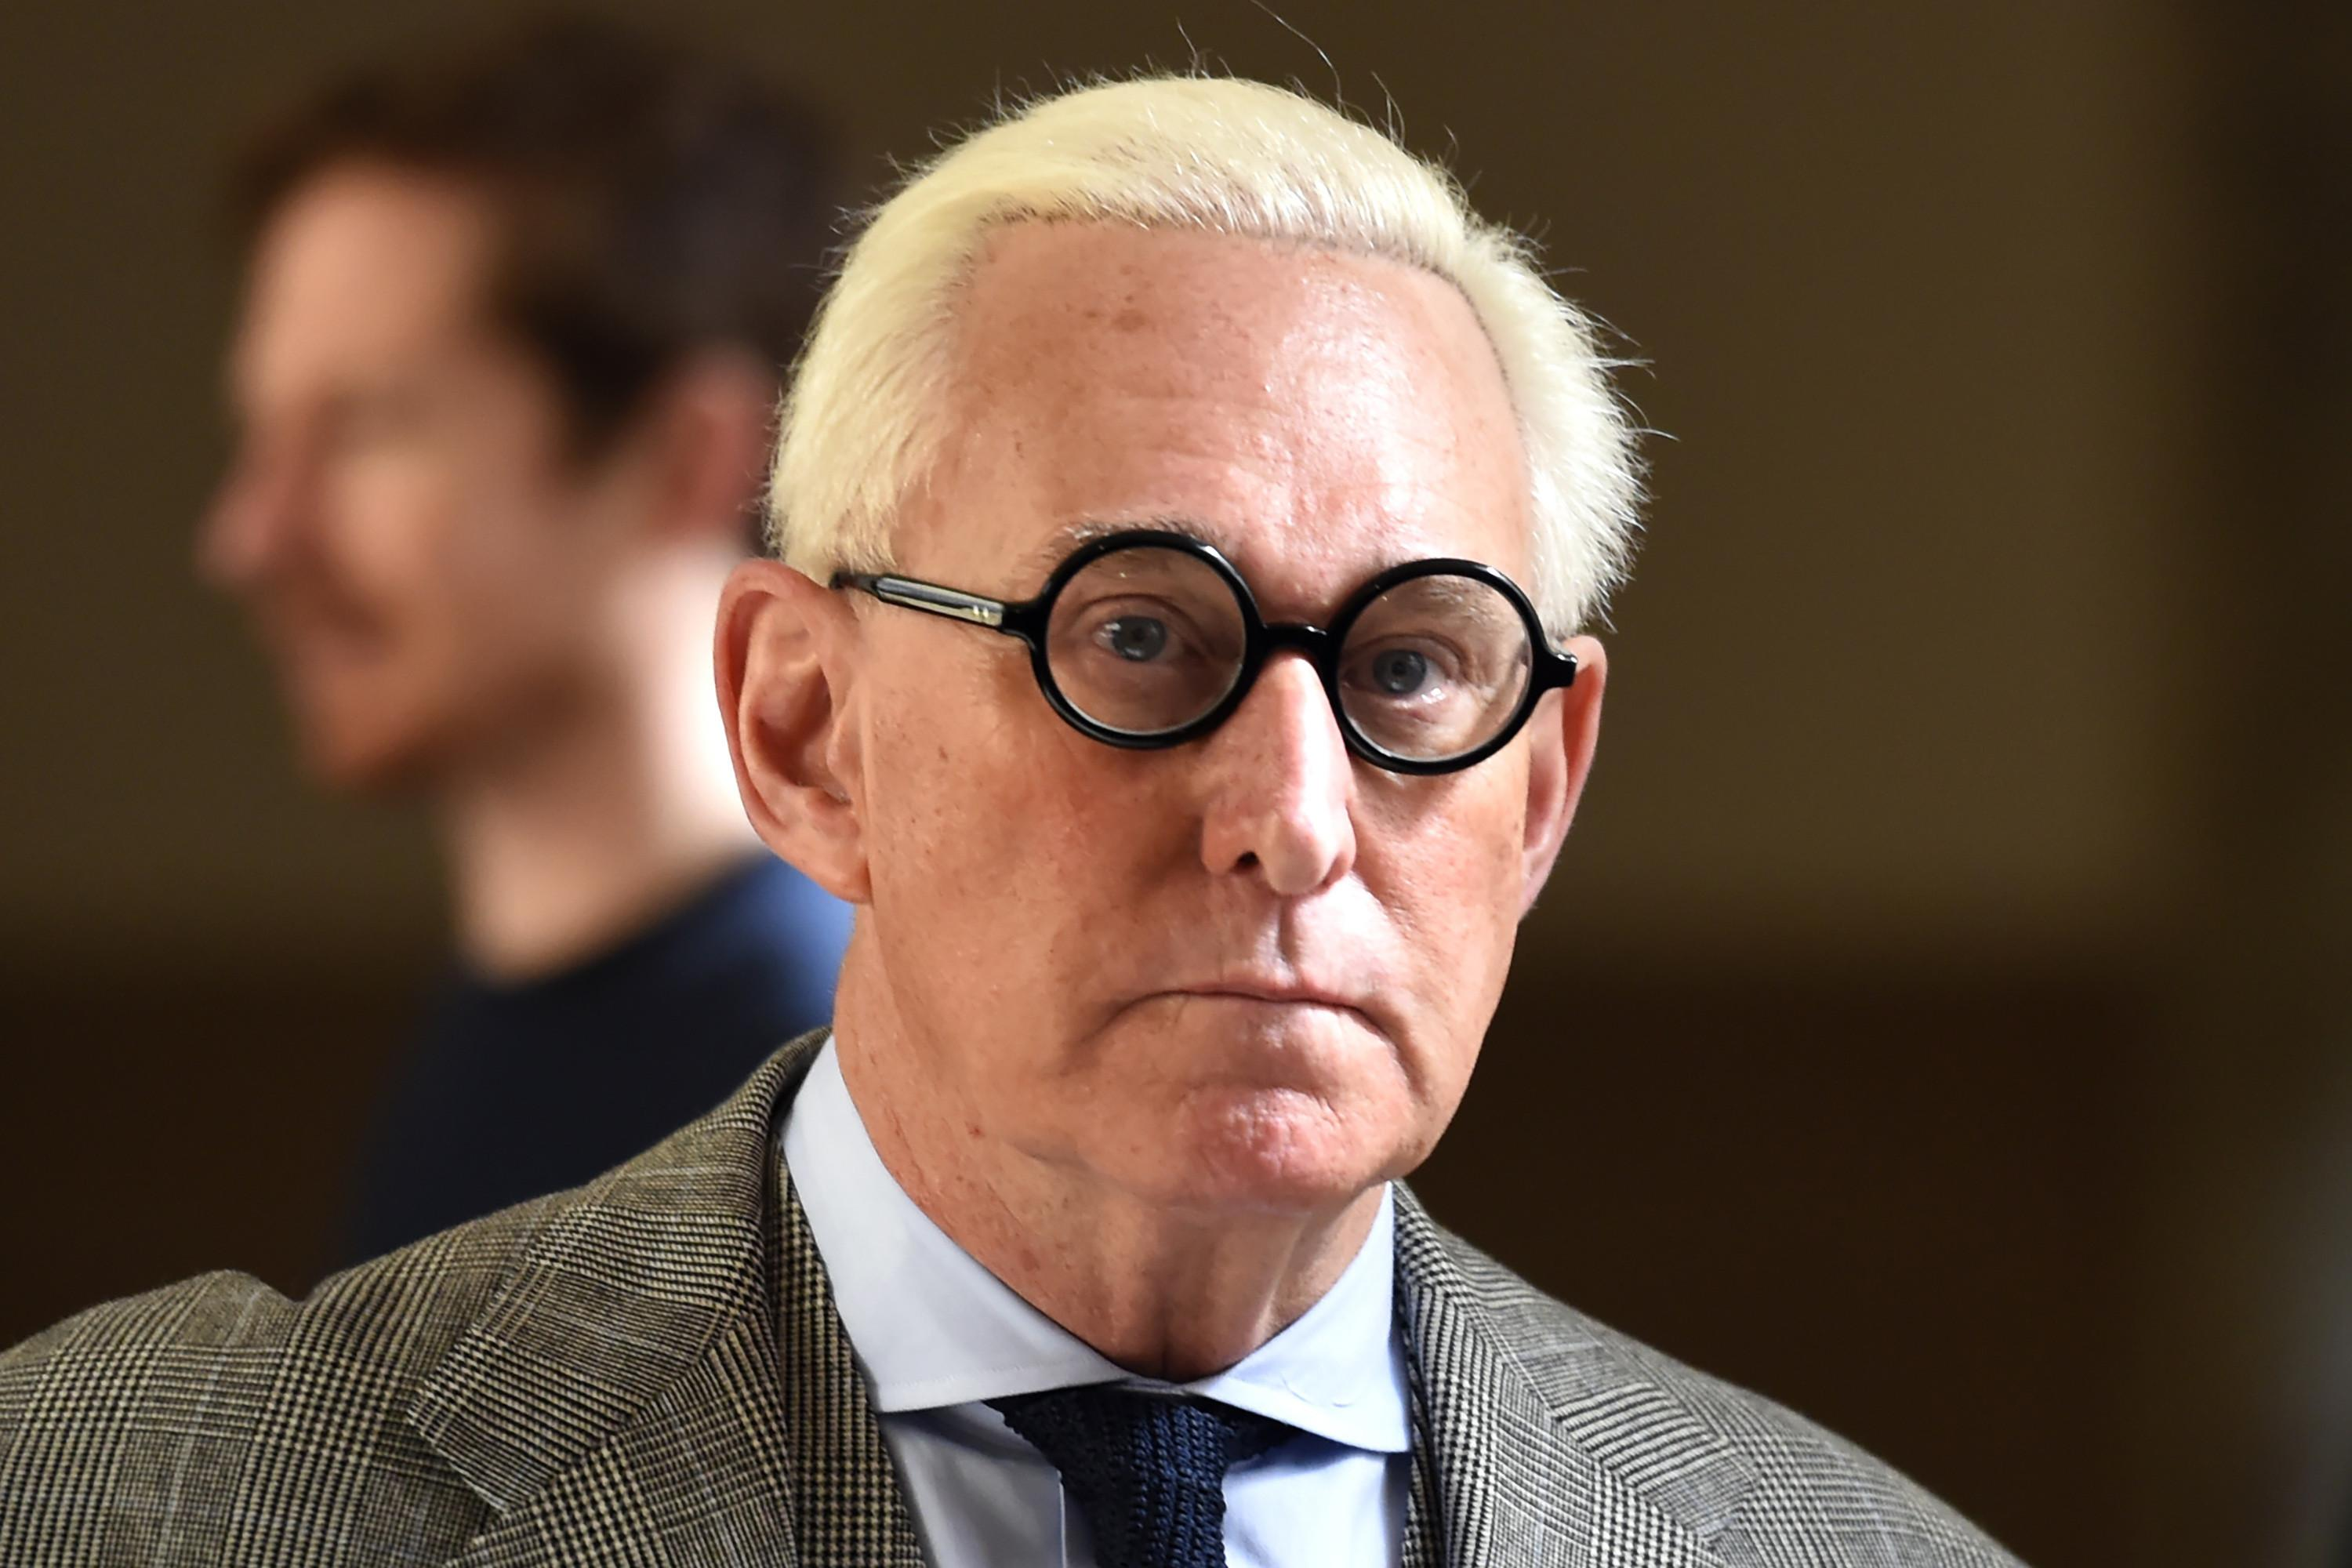 July 31 Show: Roger Stone, Trump Insider & Political Operative